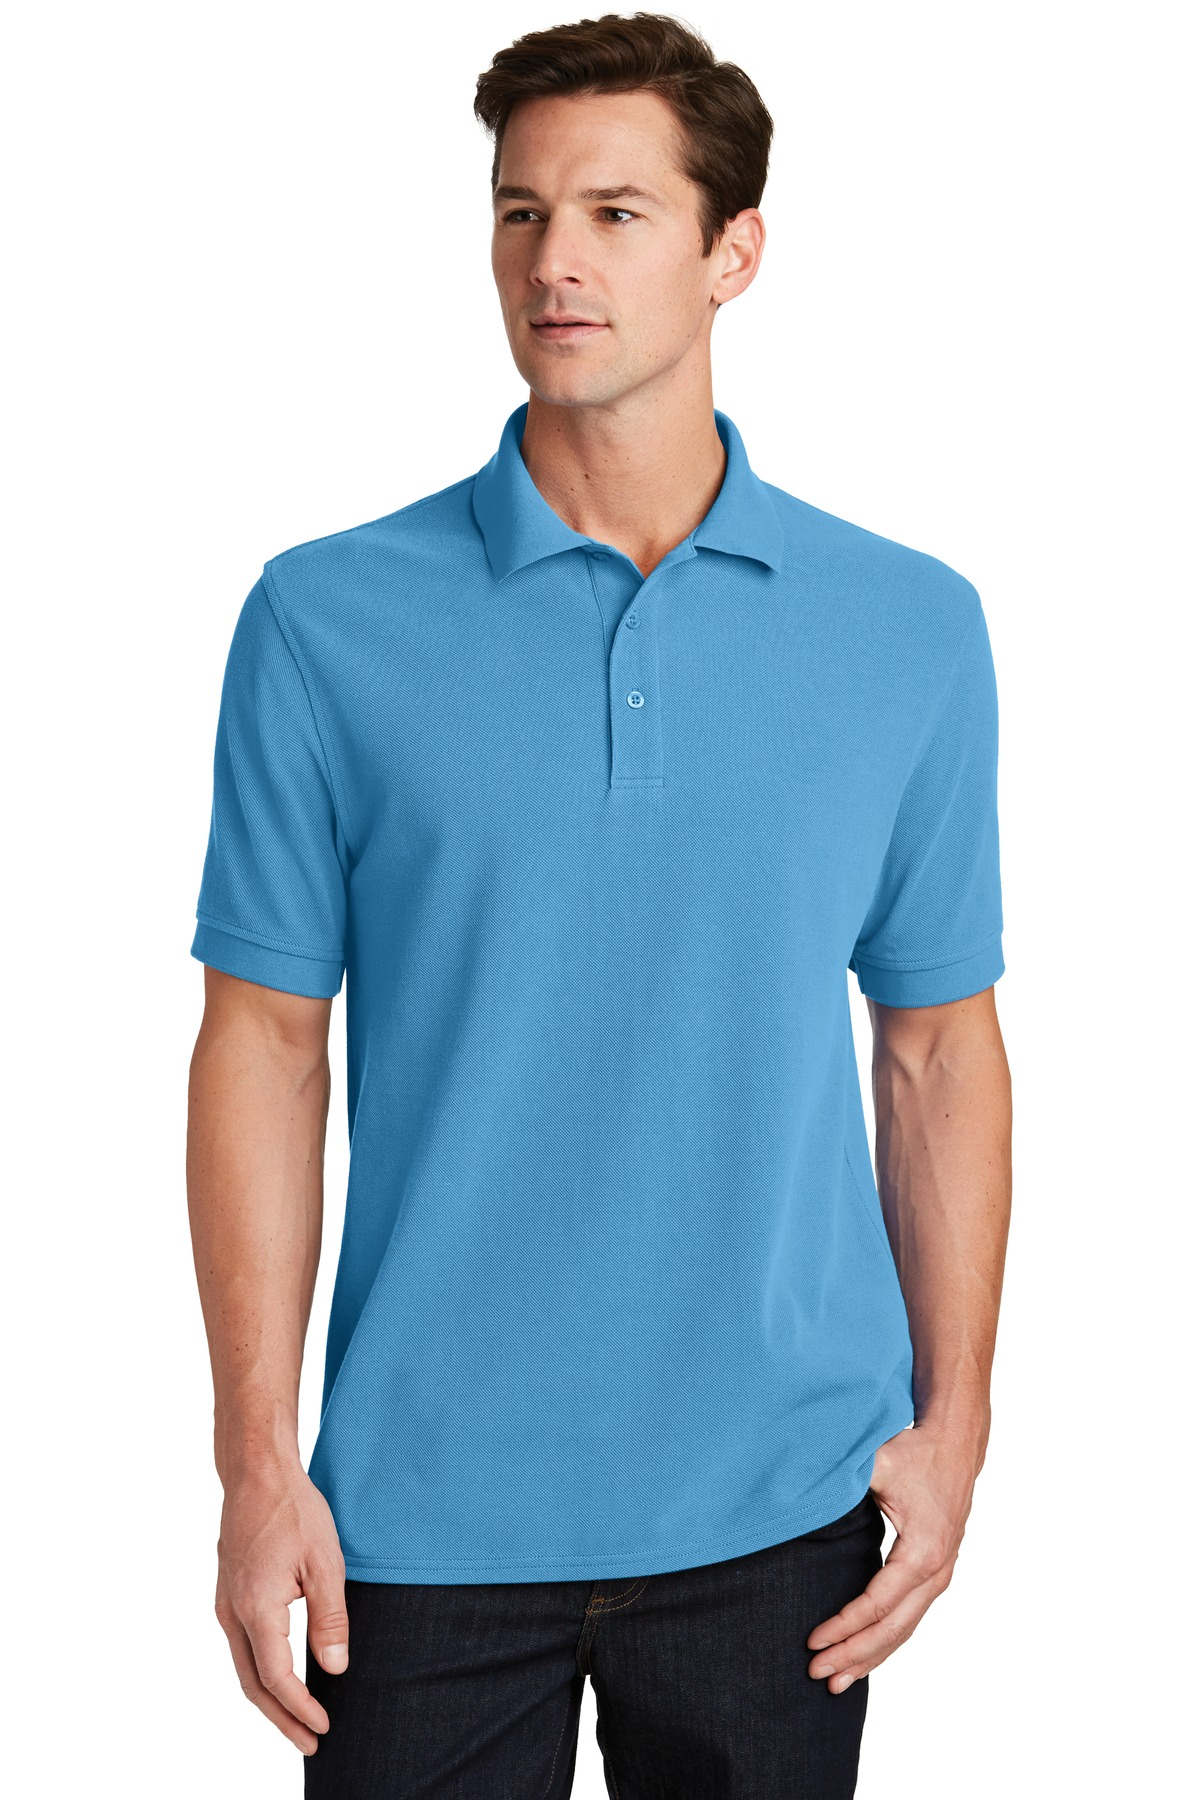 Port & Company ®  Combed Ring Spun Pique Polo. KP1500 - Aquatic Blue